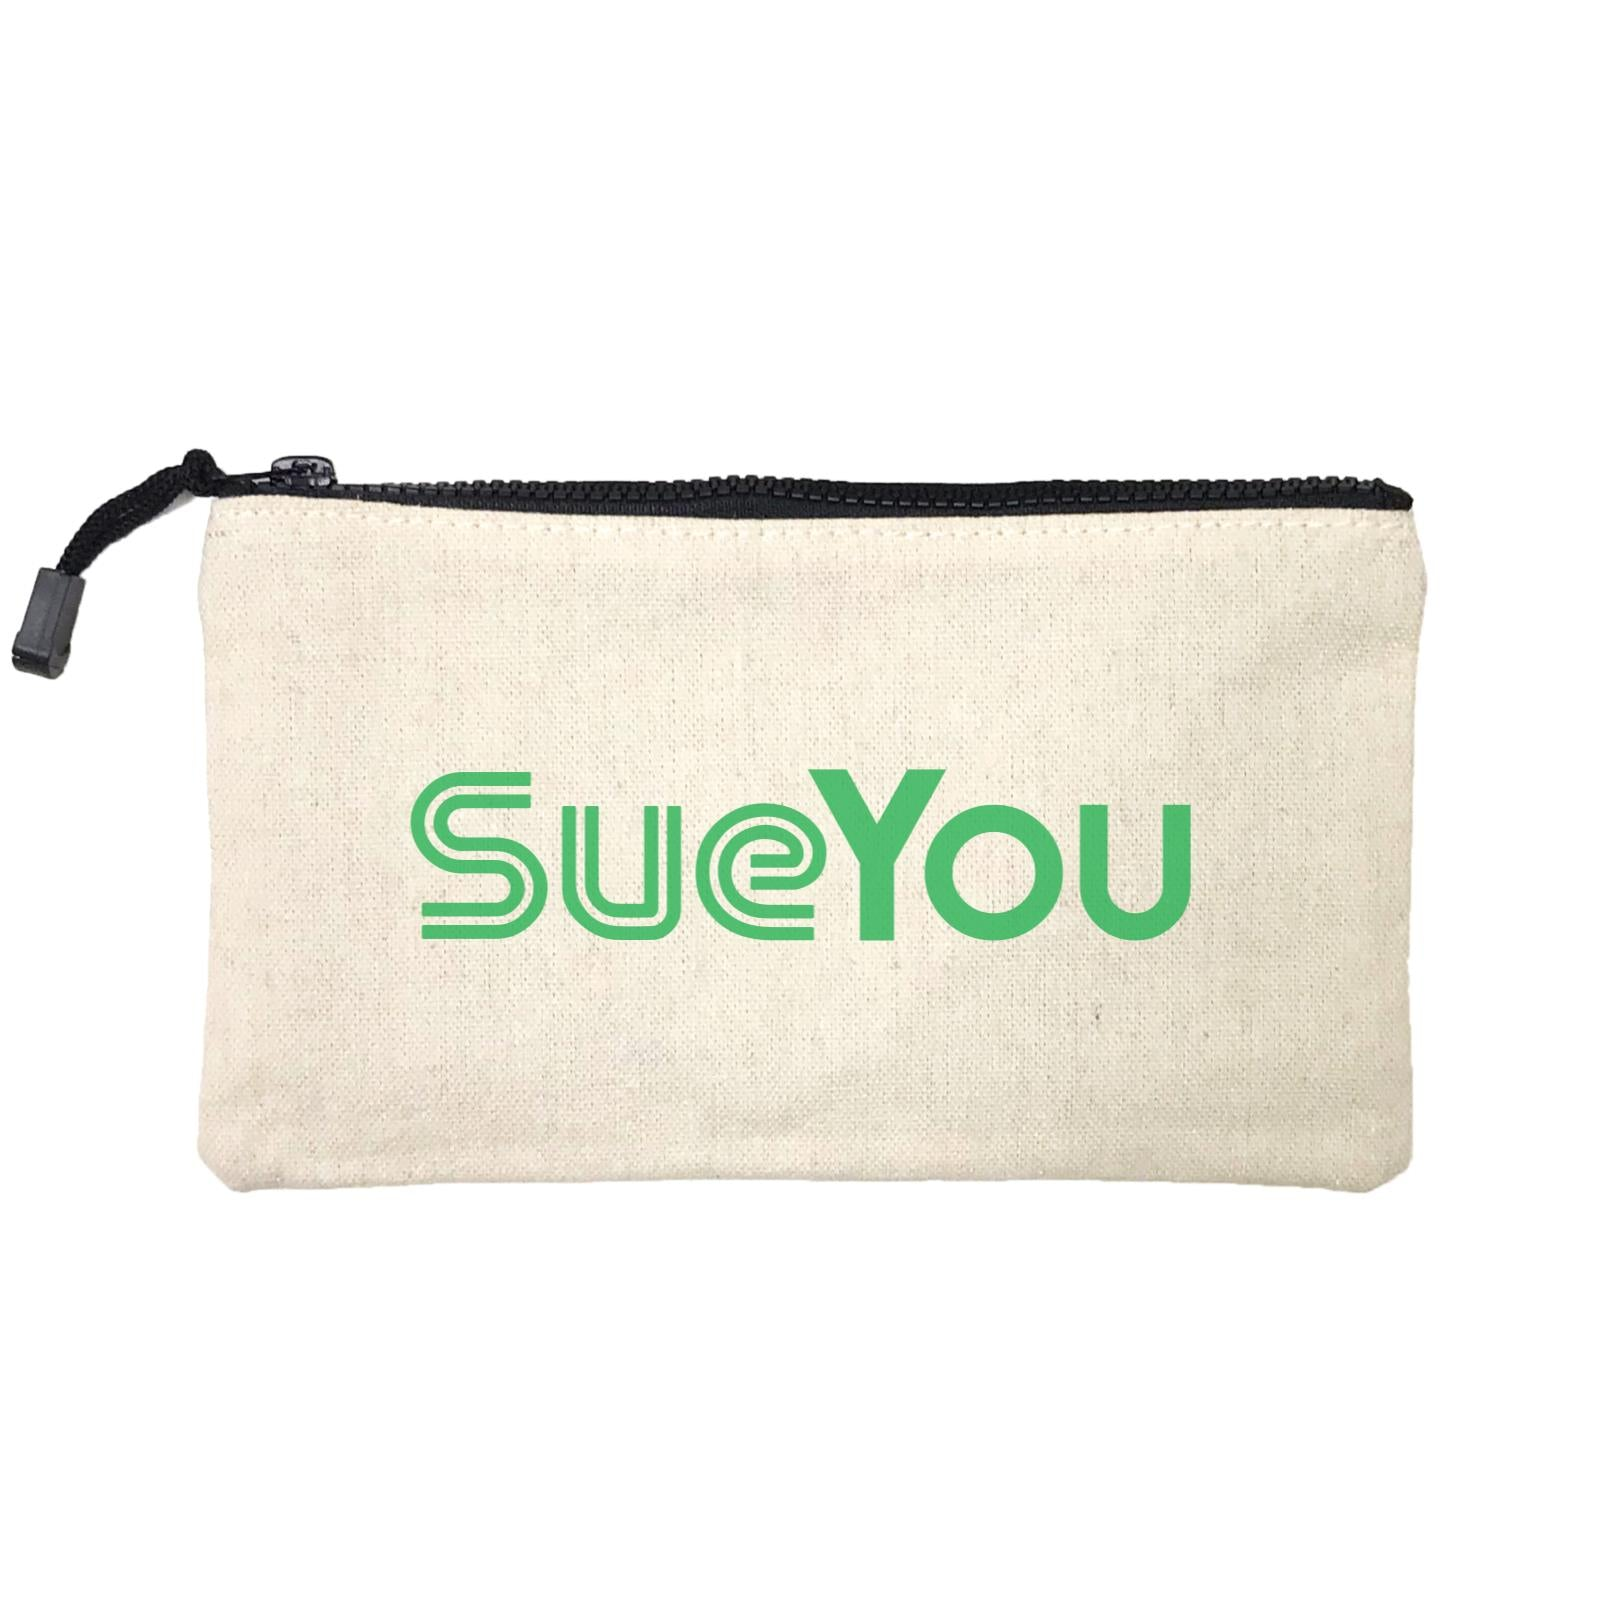 Slang Statement SueYou SP Stationery Pouch